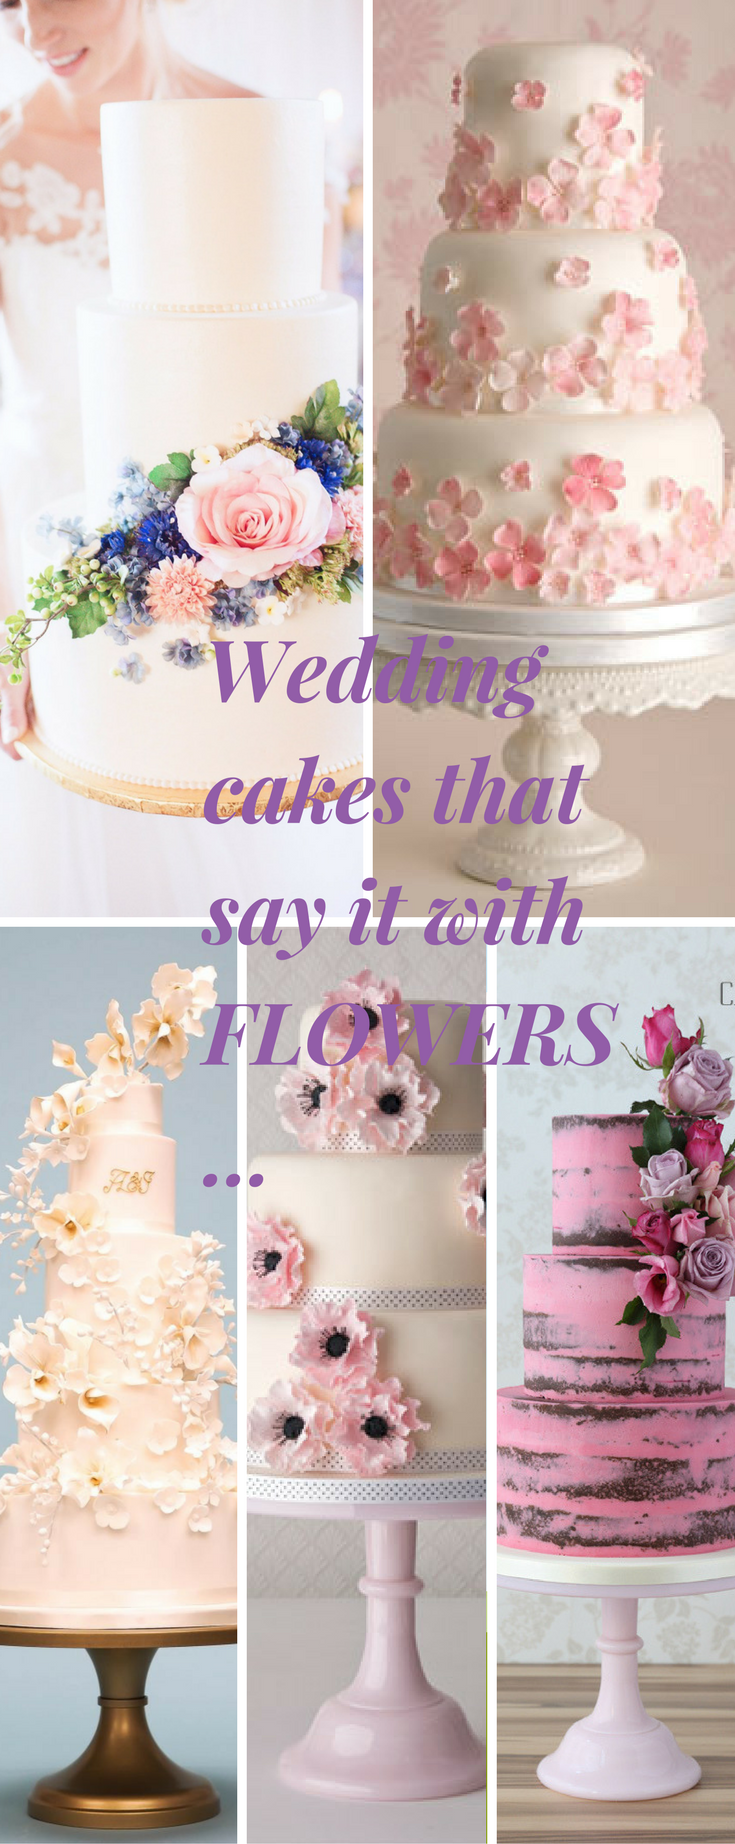 wedding cakes with flowers